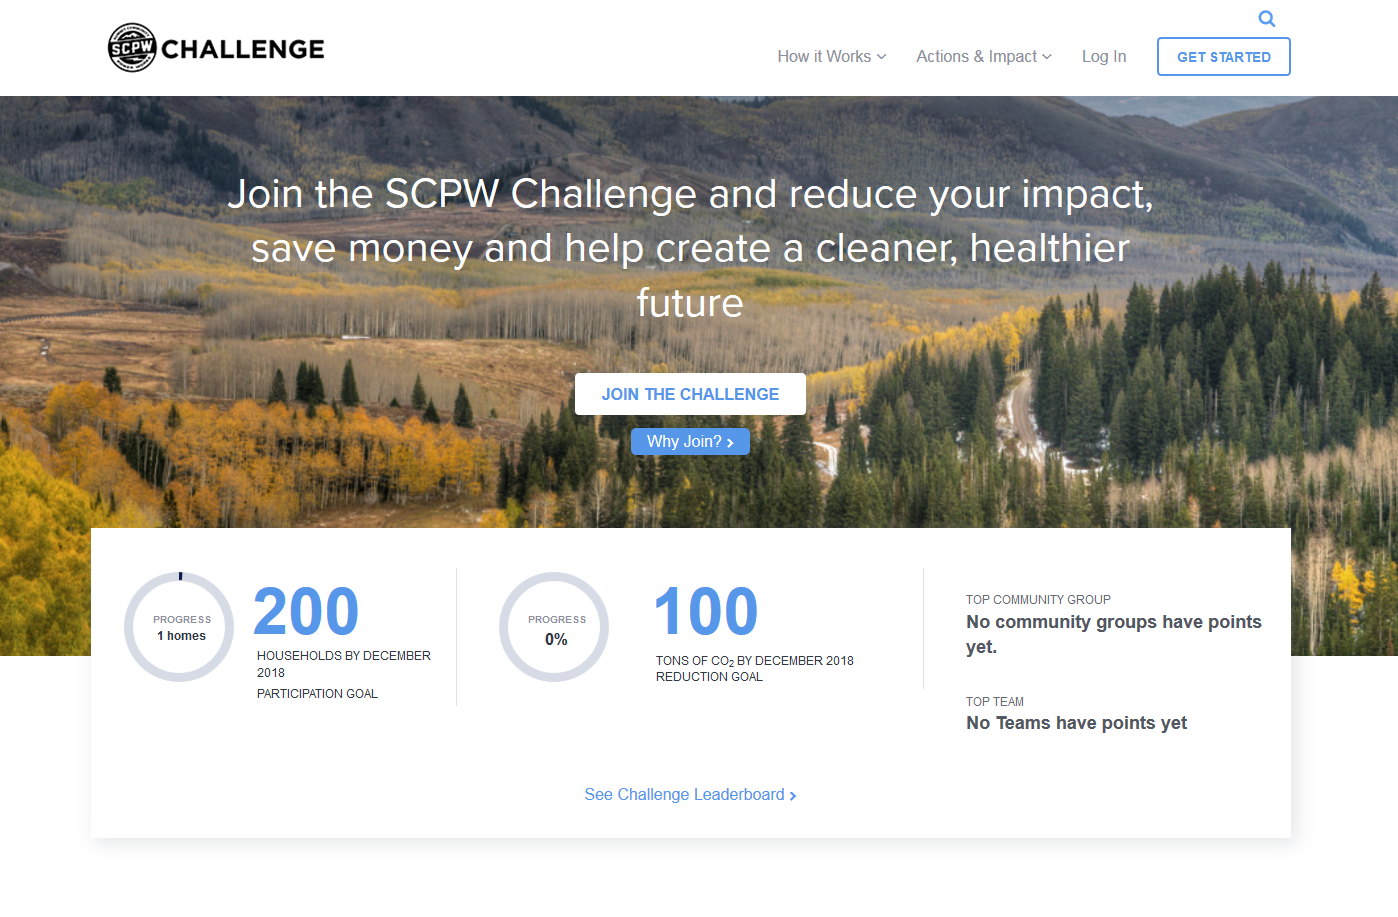 Join the SCPW Challenge today! - https://scpwchallenge.org/